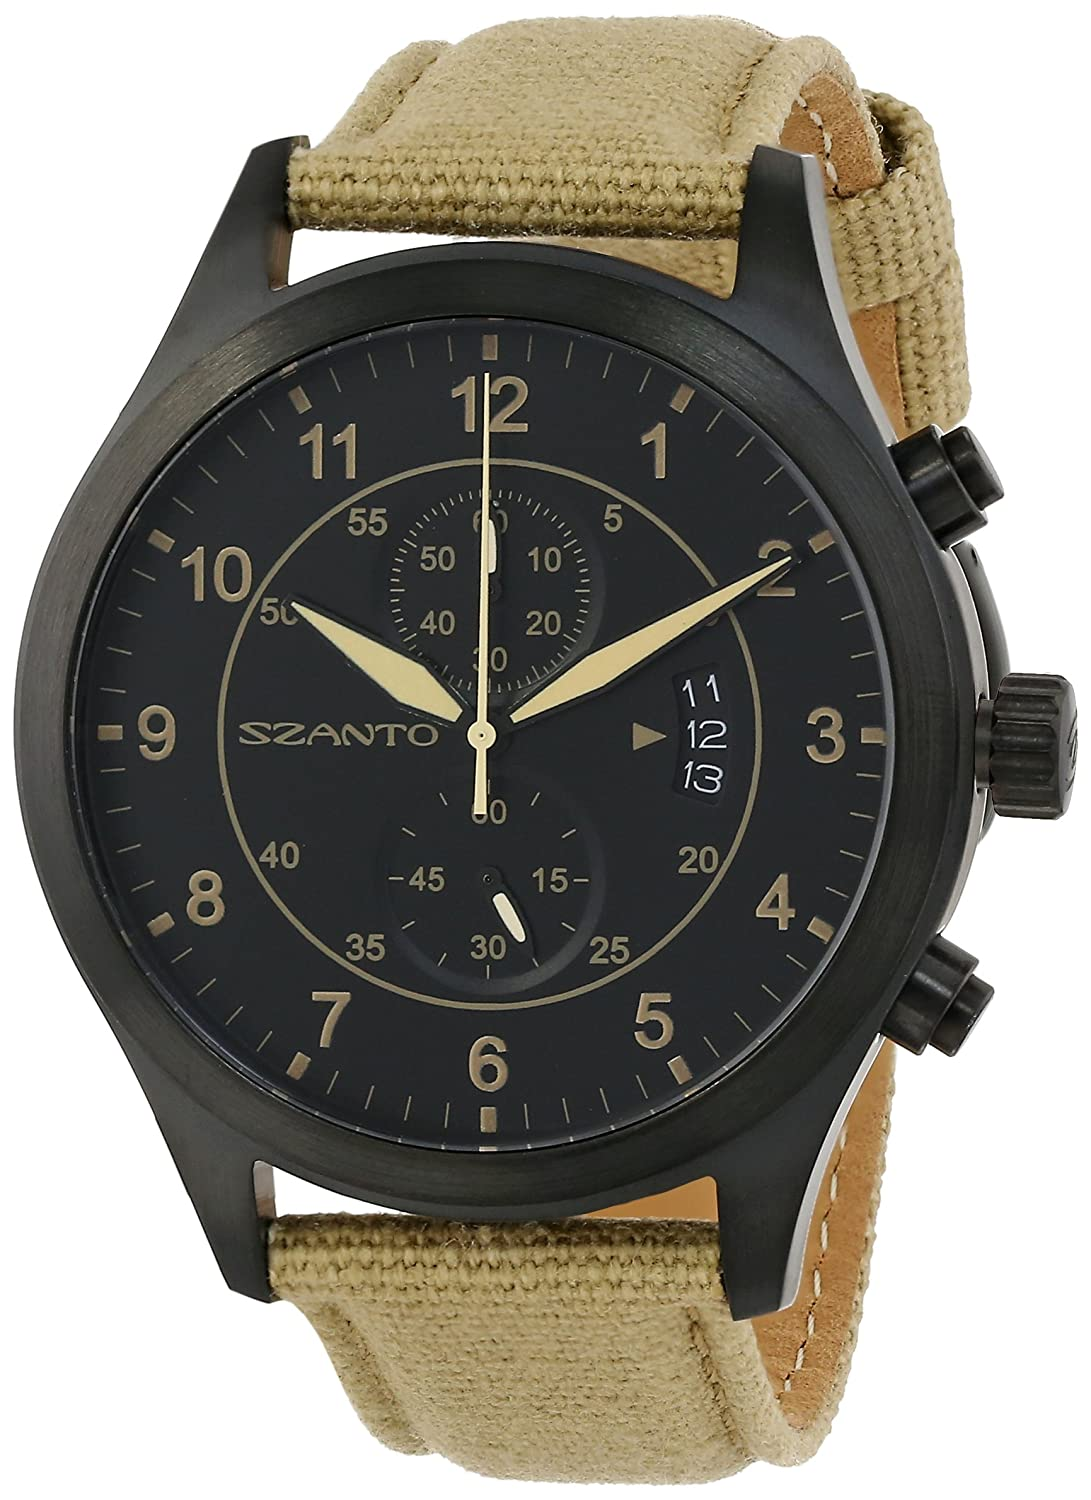 Szanto SZ1202 Unisex Patrol Khaki Nylon Band Schwarzes Zifferblatt Vintage Inspired Military Chronograph Watch